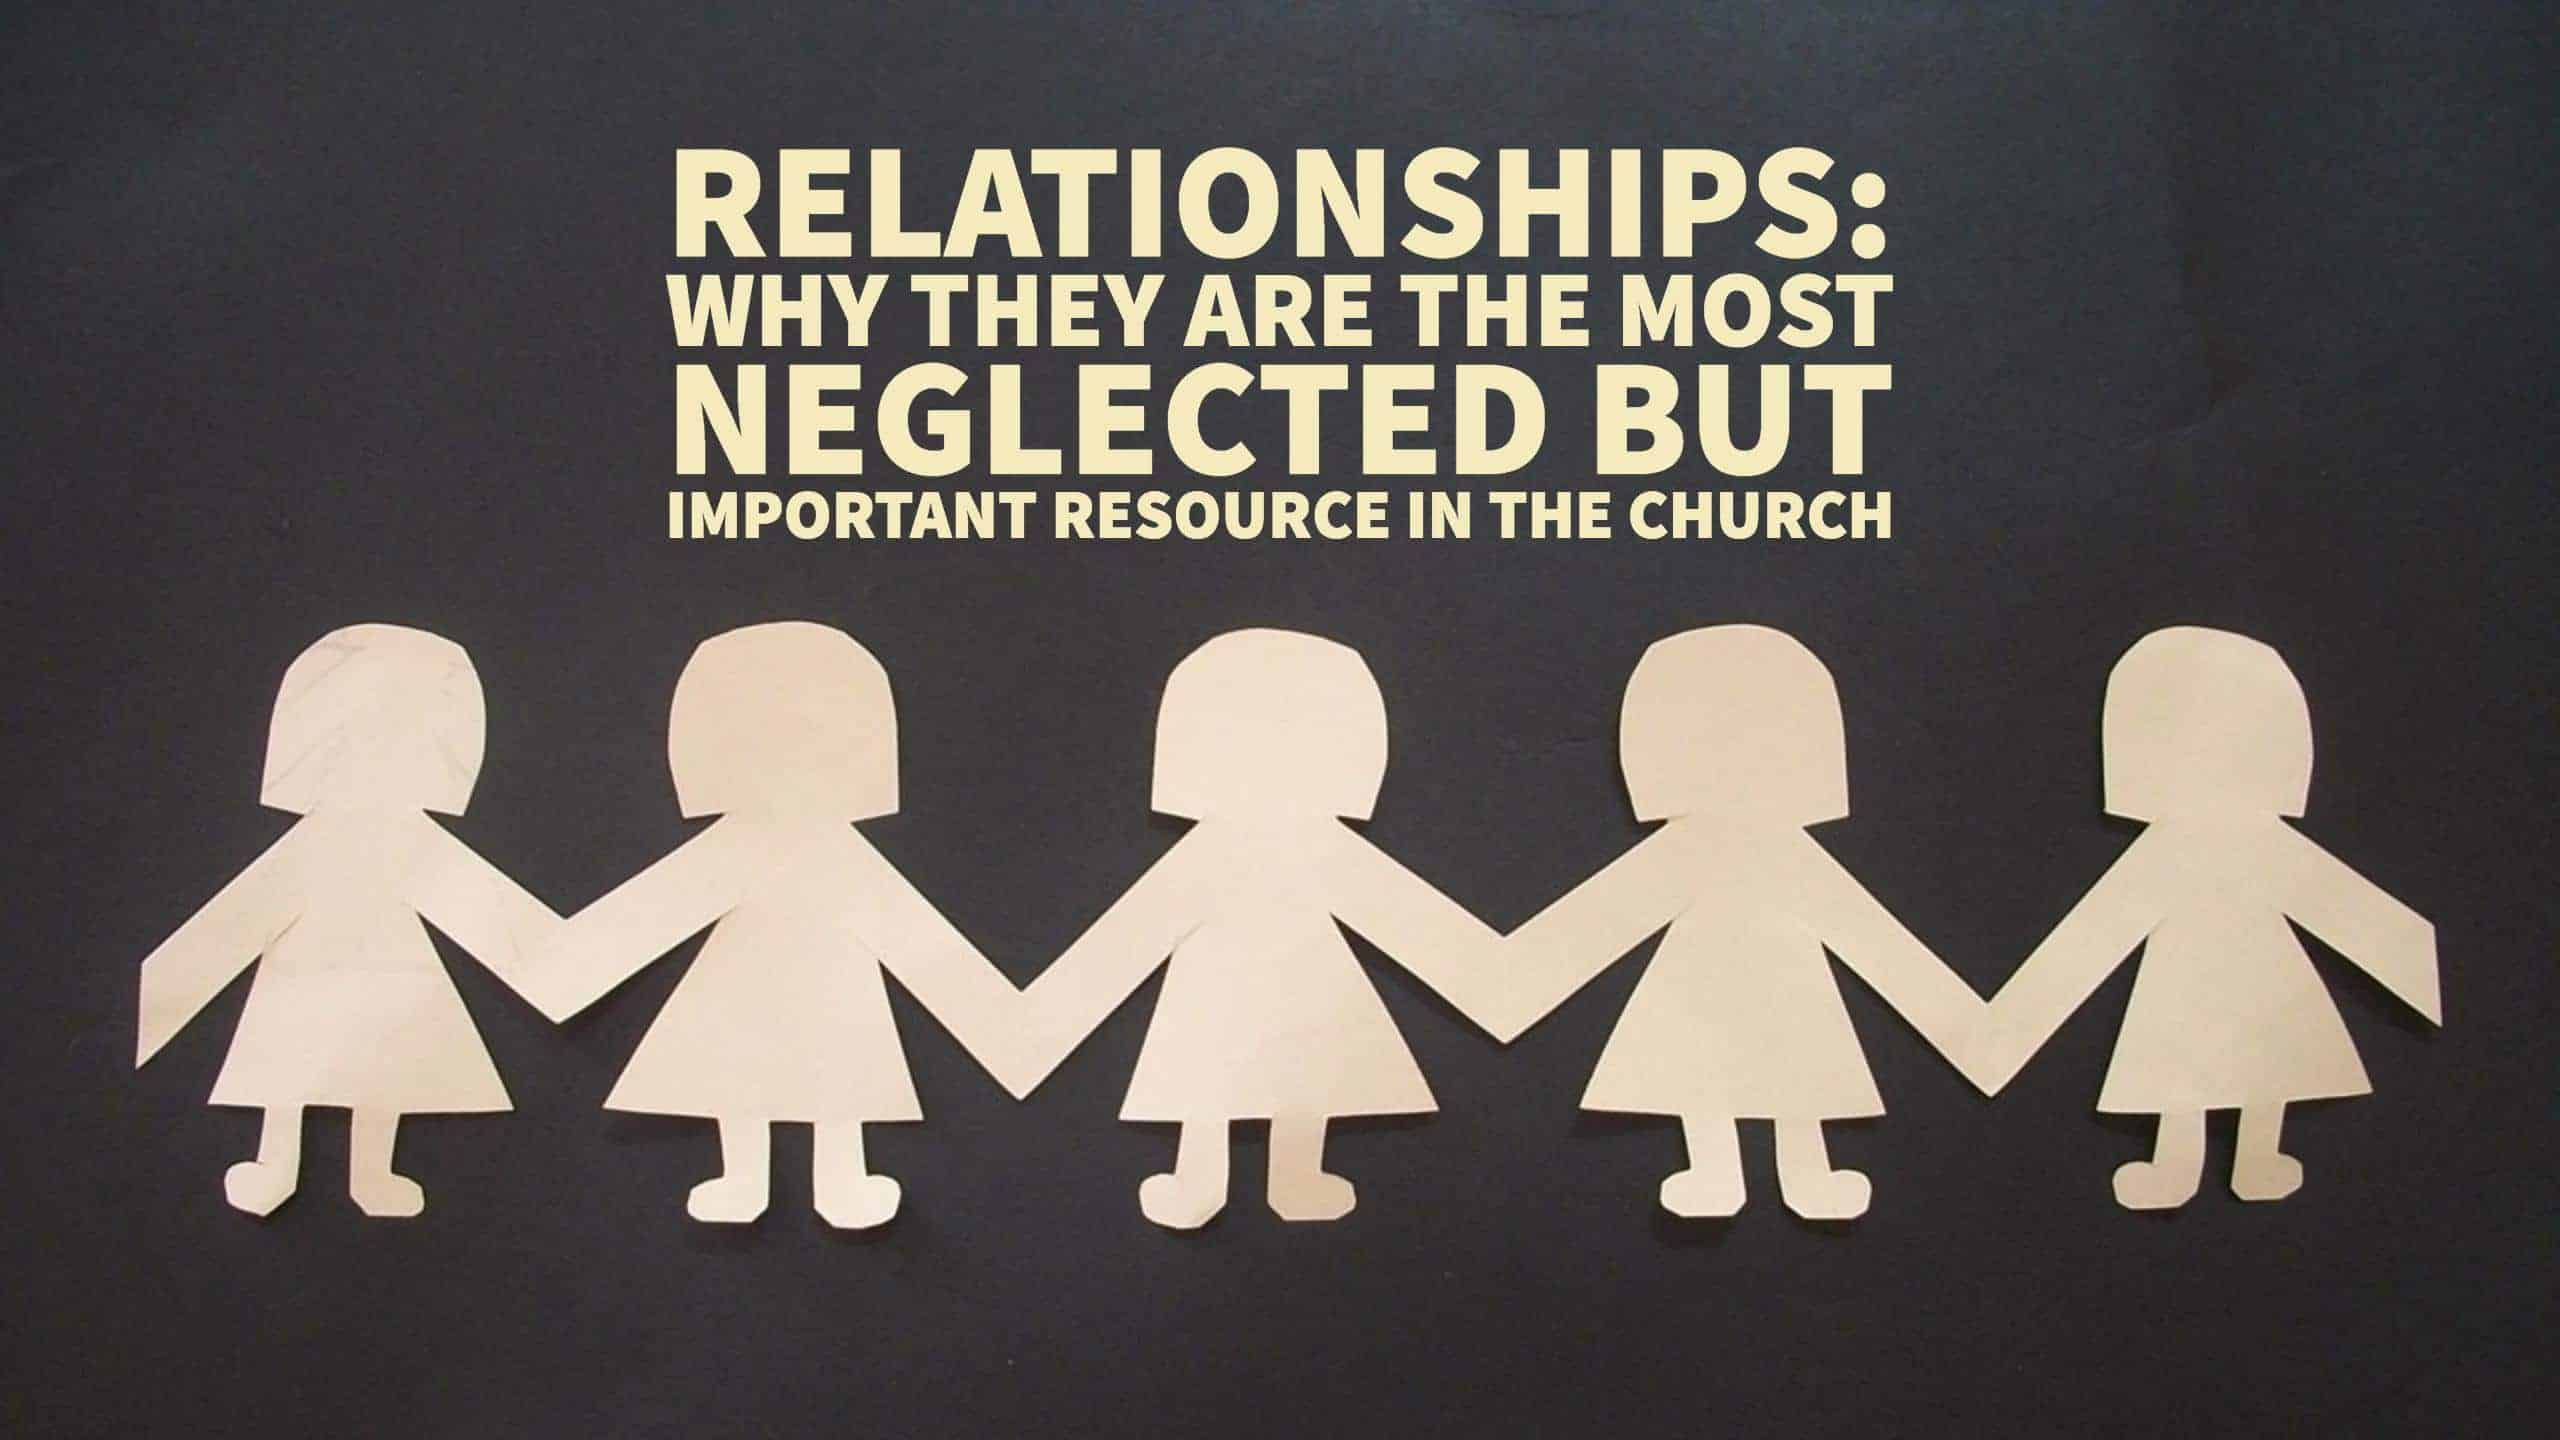 Relationships: Why They Are The Most Neglected But Important Resource In The Church